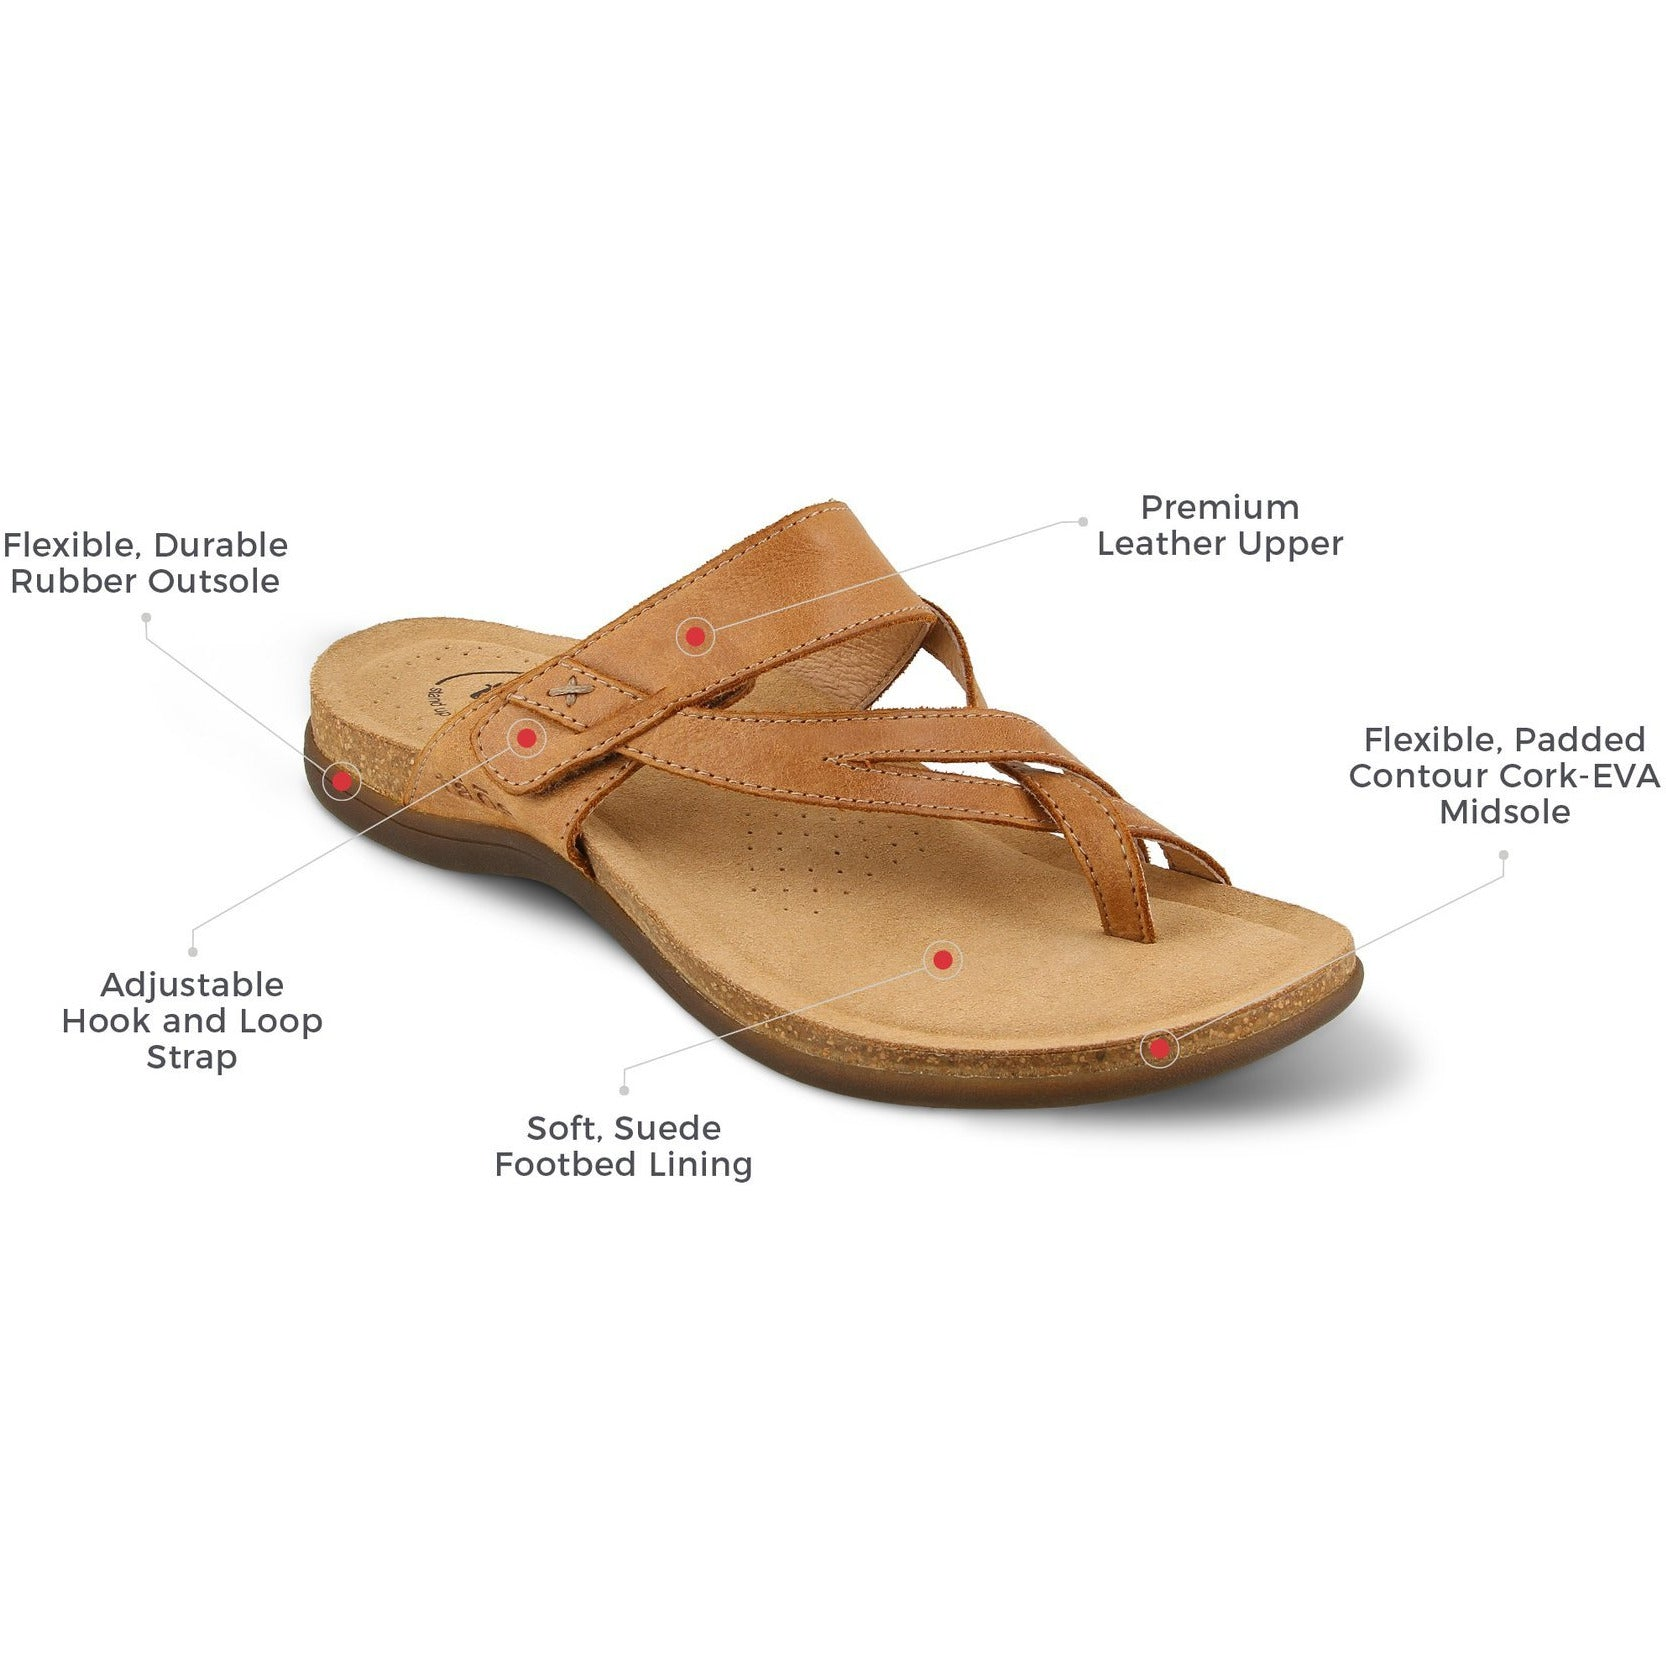 TAOS TAOS PERFECT TAN getset-footwear.myshopify.com